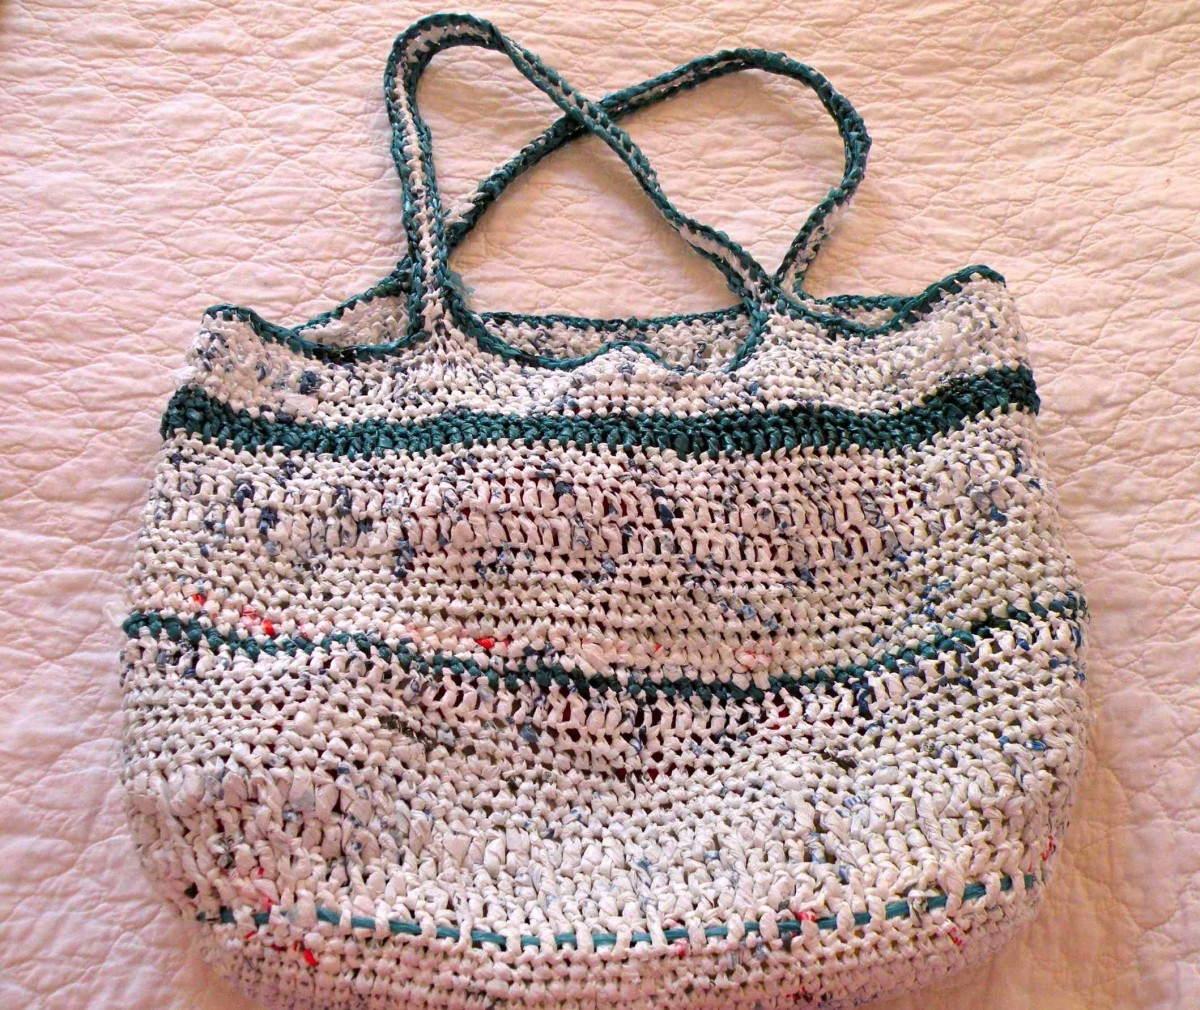 Crochet Pattern For Bags Plastic : Crochet Fun Beach Bags from Recycled Plastic Bags FeltMagnet